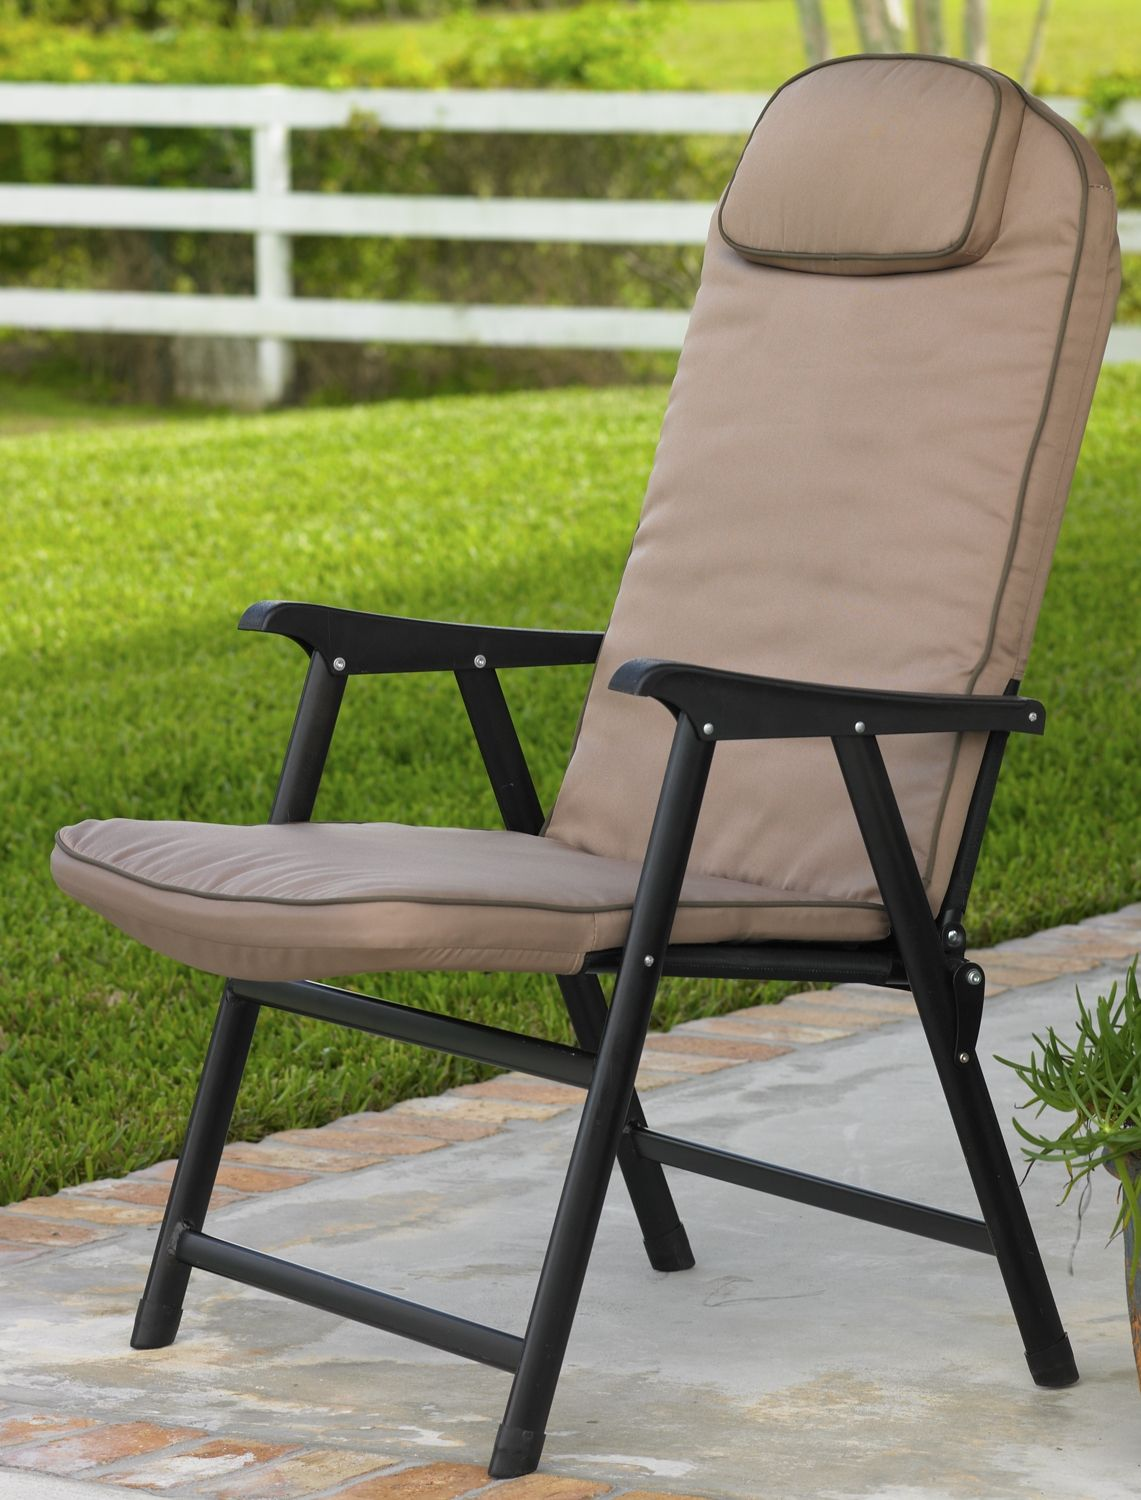 Exceptional Extra Wide Folding Padded Outdoor Chair